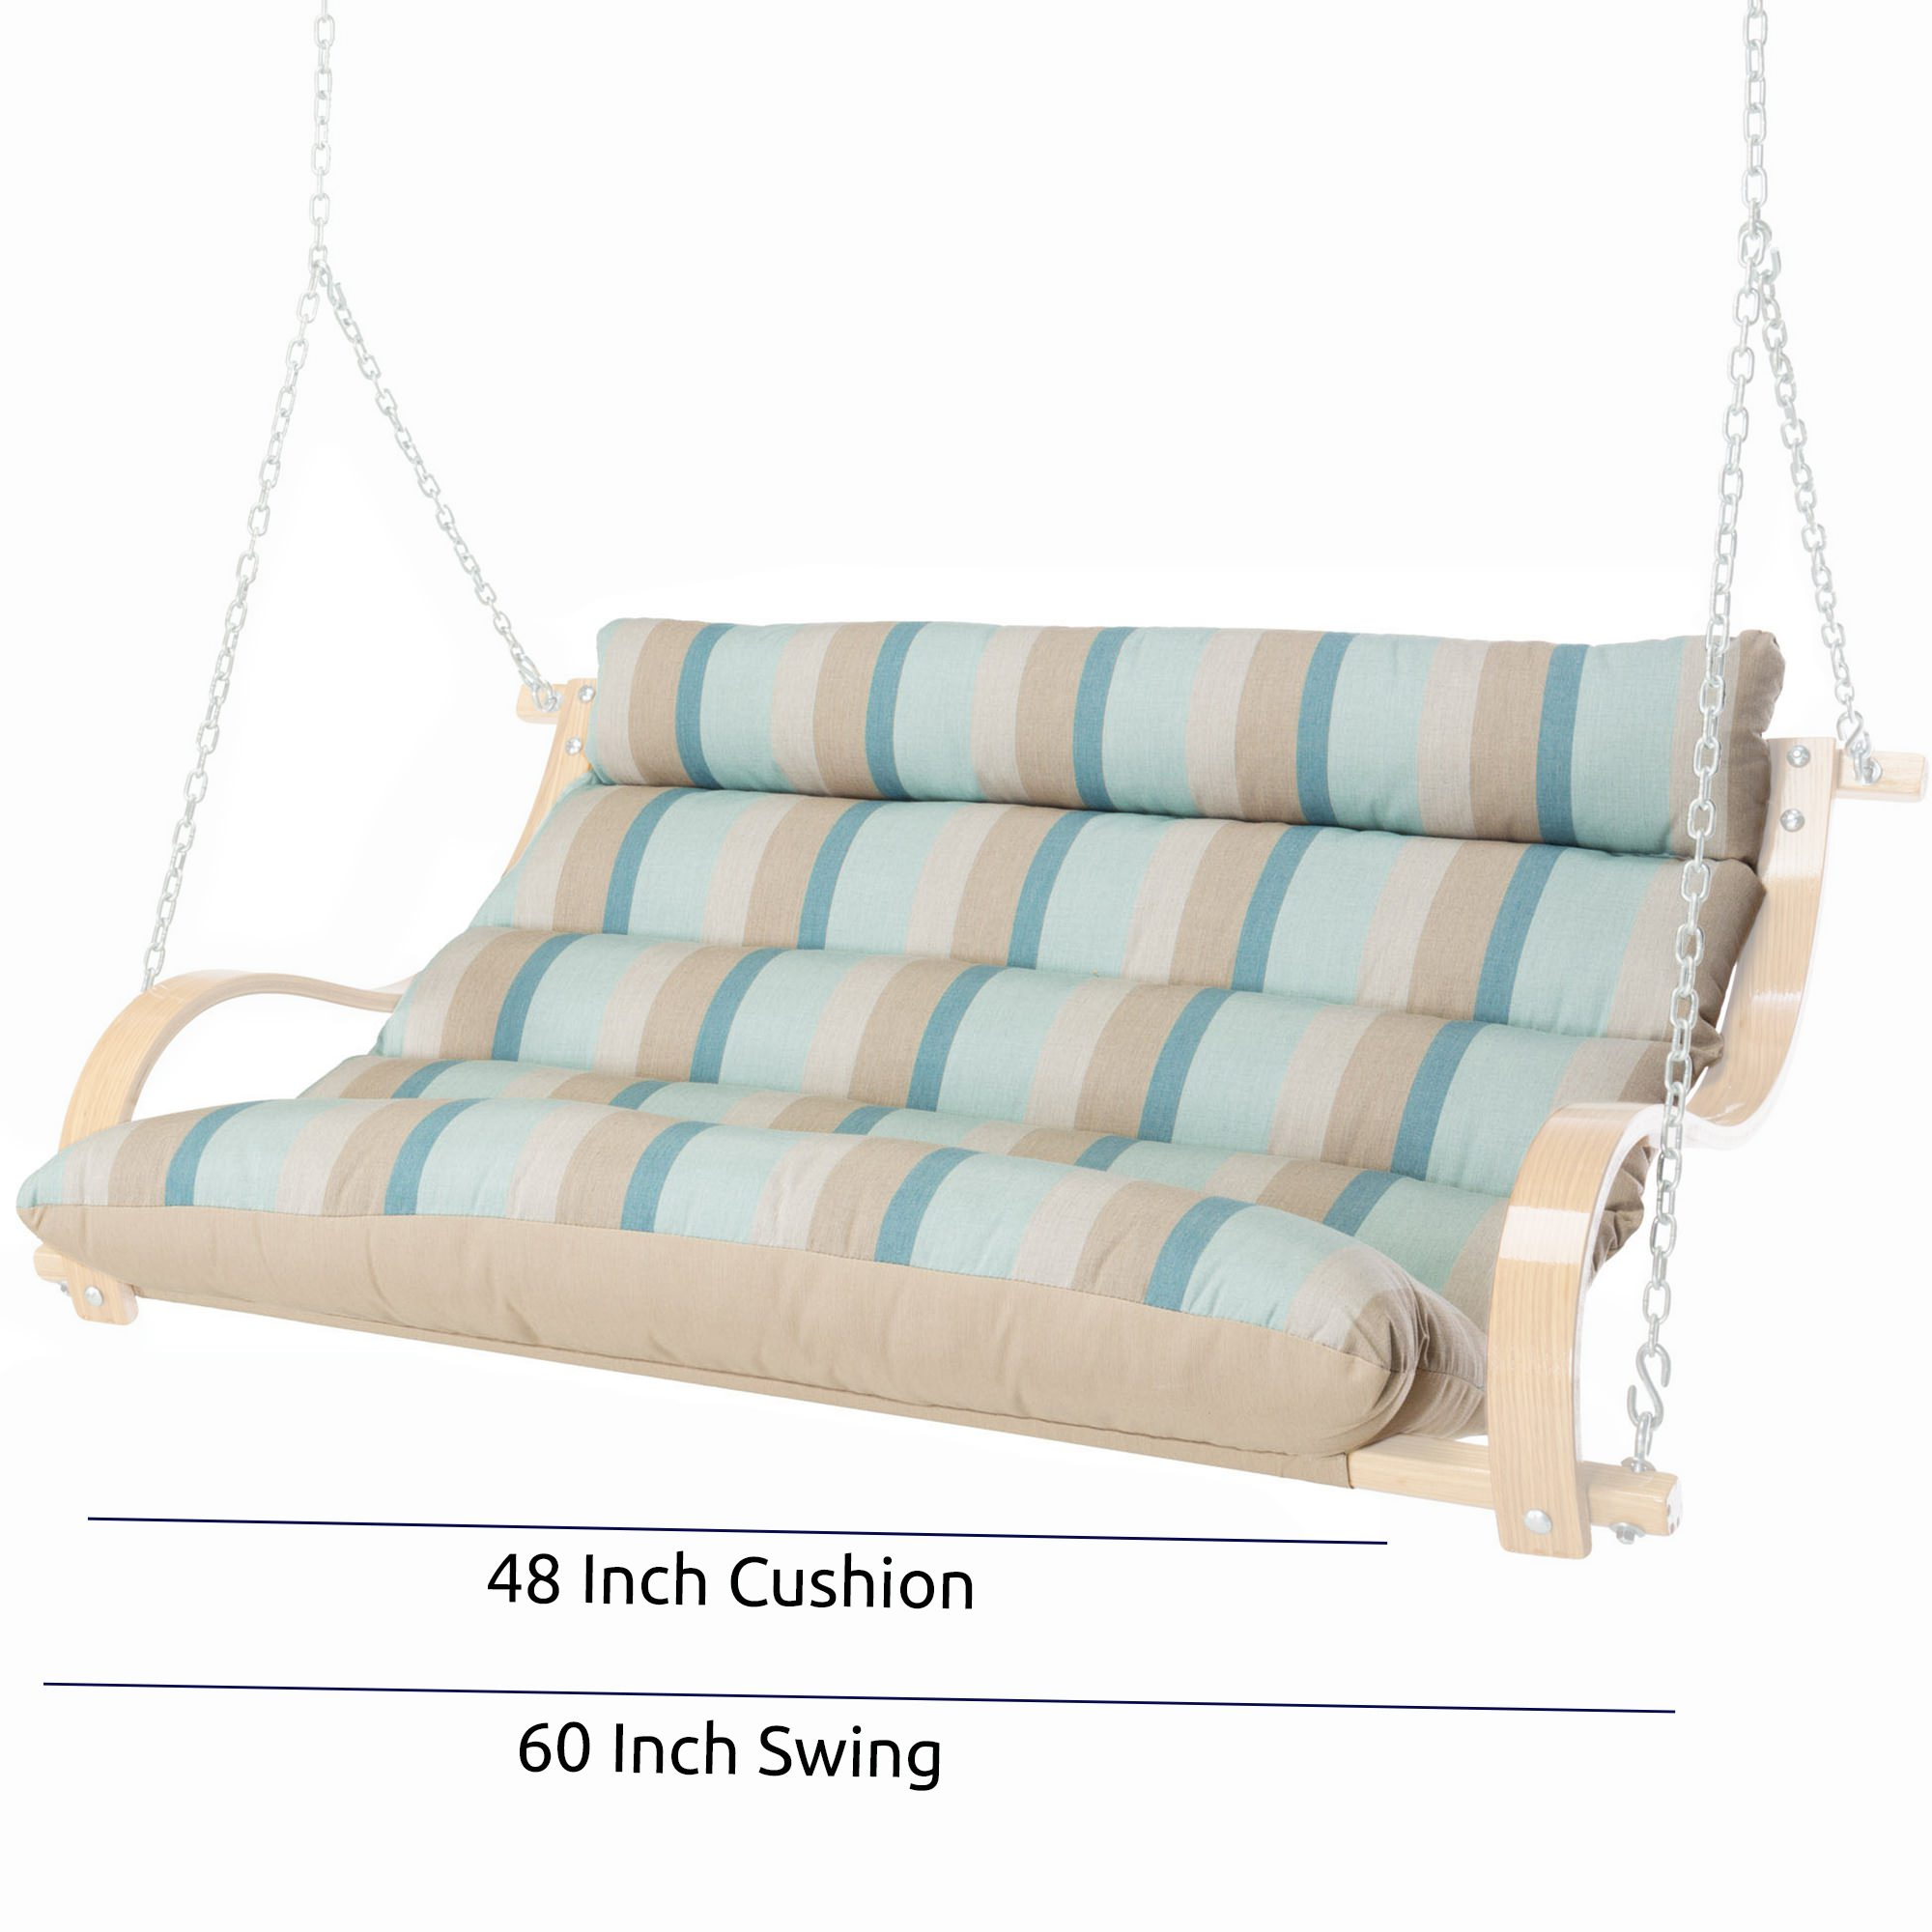 48 Inch Replacement Cushion For 60 Inch Wide Deluxe Double Swing